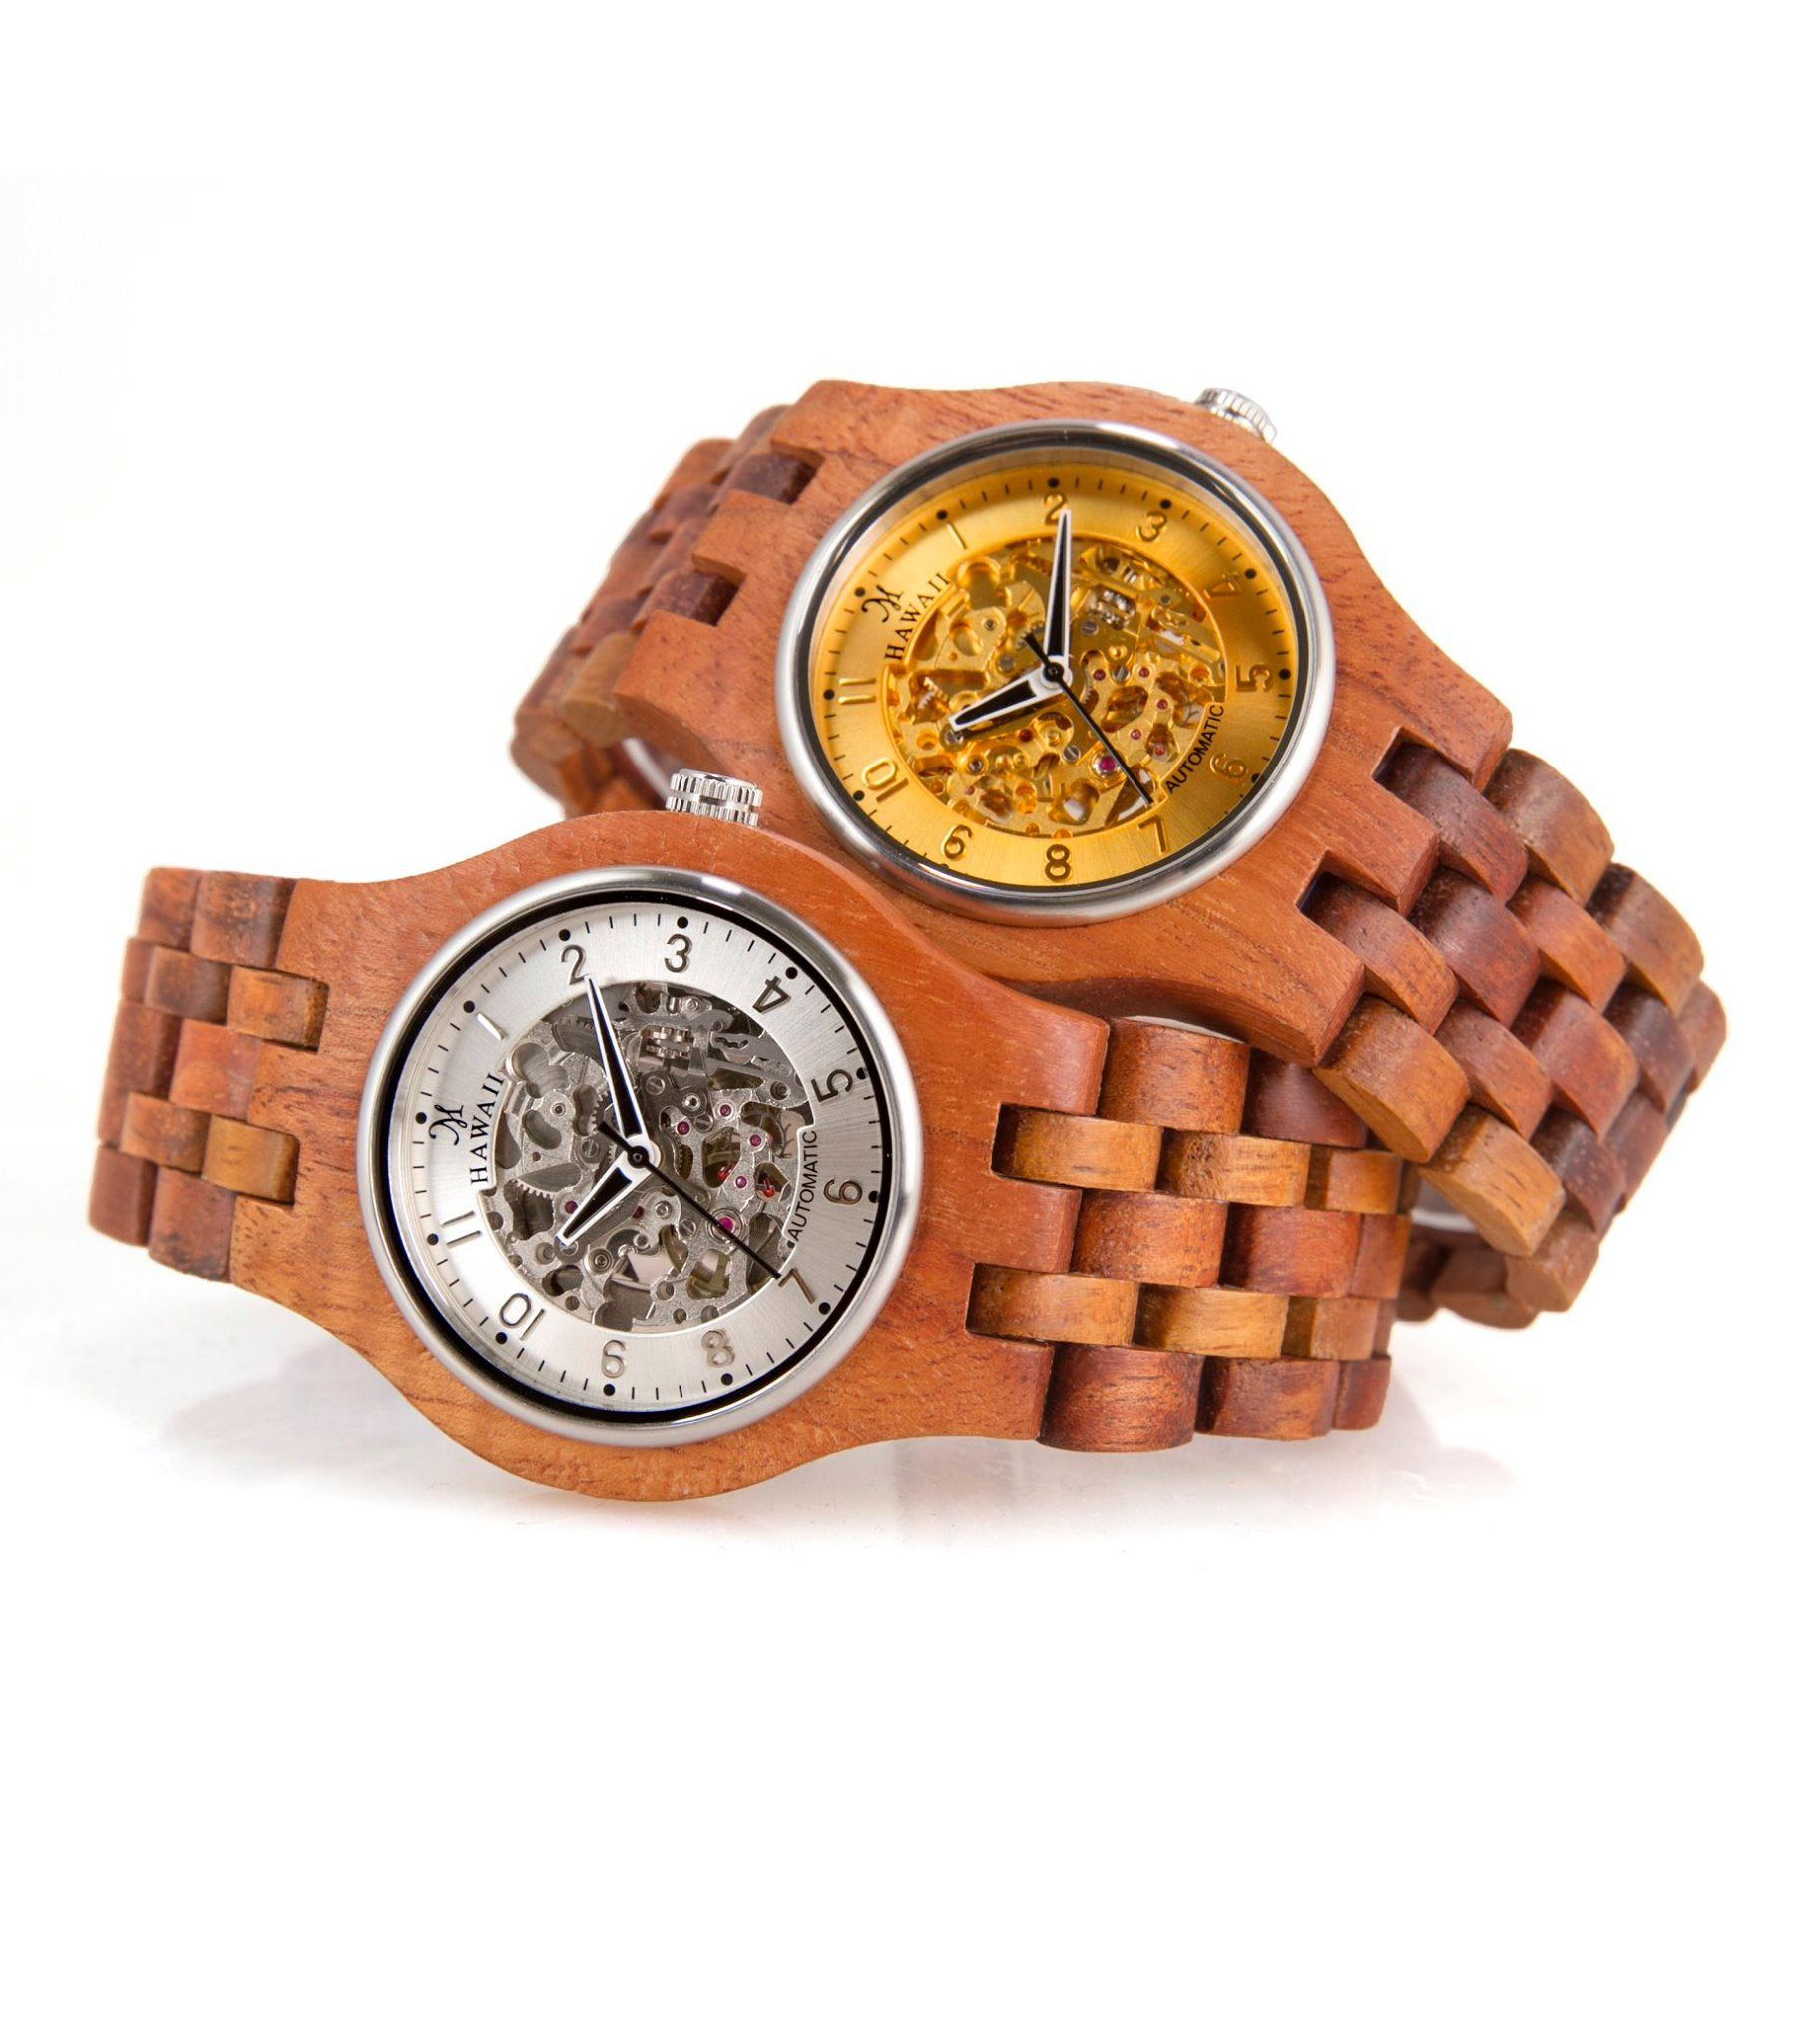 cork scaly natural sunglasses watches earth wood bags watch products sustainable goods